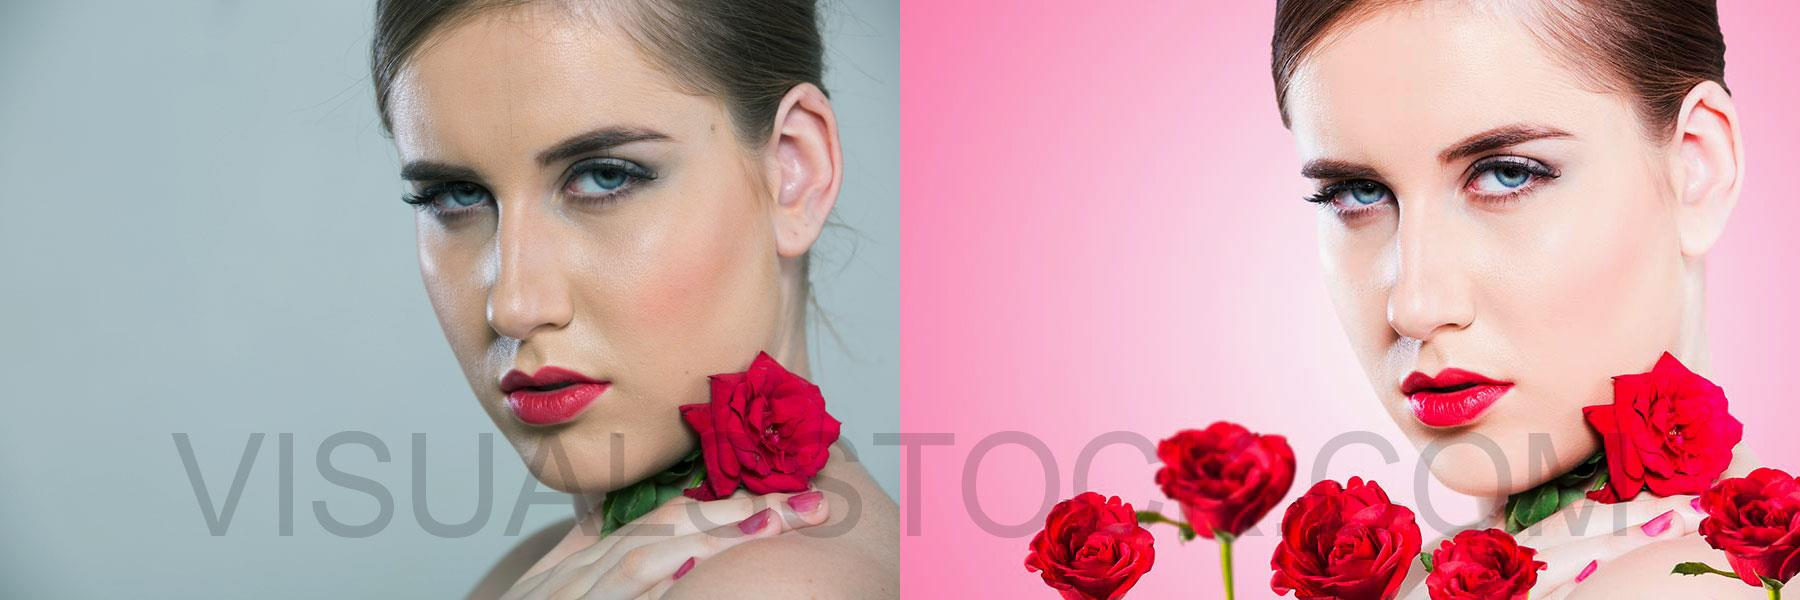 Portrait Photo Retouching Company In Manchester.   We Are A Best Portrait Photo Retouching Service Provider. We Do Portrait Photo Retouching Including, Skin Smooth, Wrinkle Removal, Stray Hair Removal And Many More.   High Quality Portrait Photo Retouching Service Provider In Manchester.